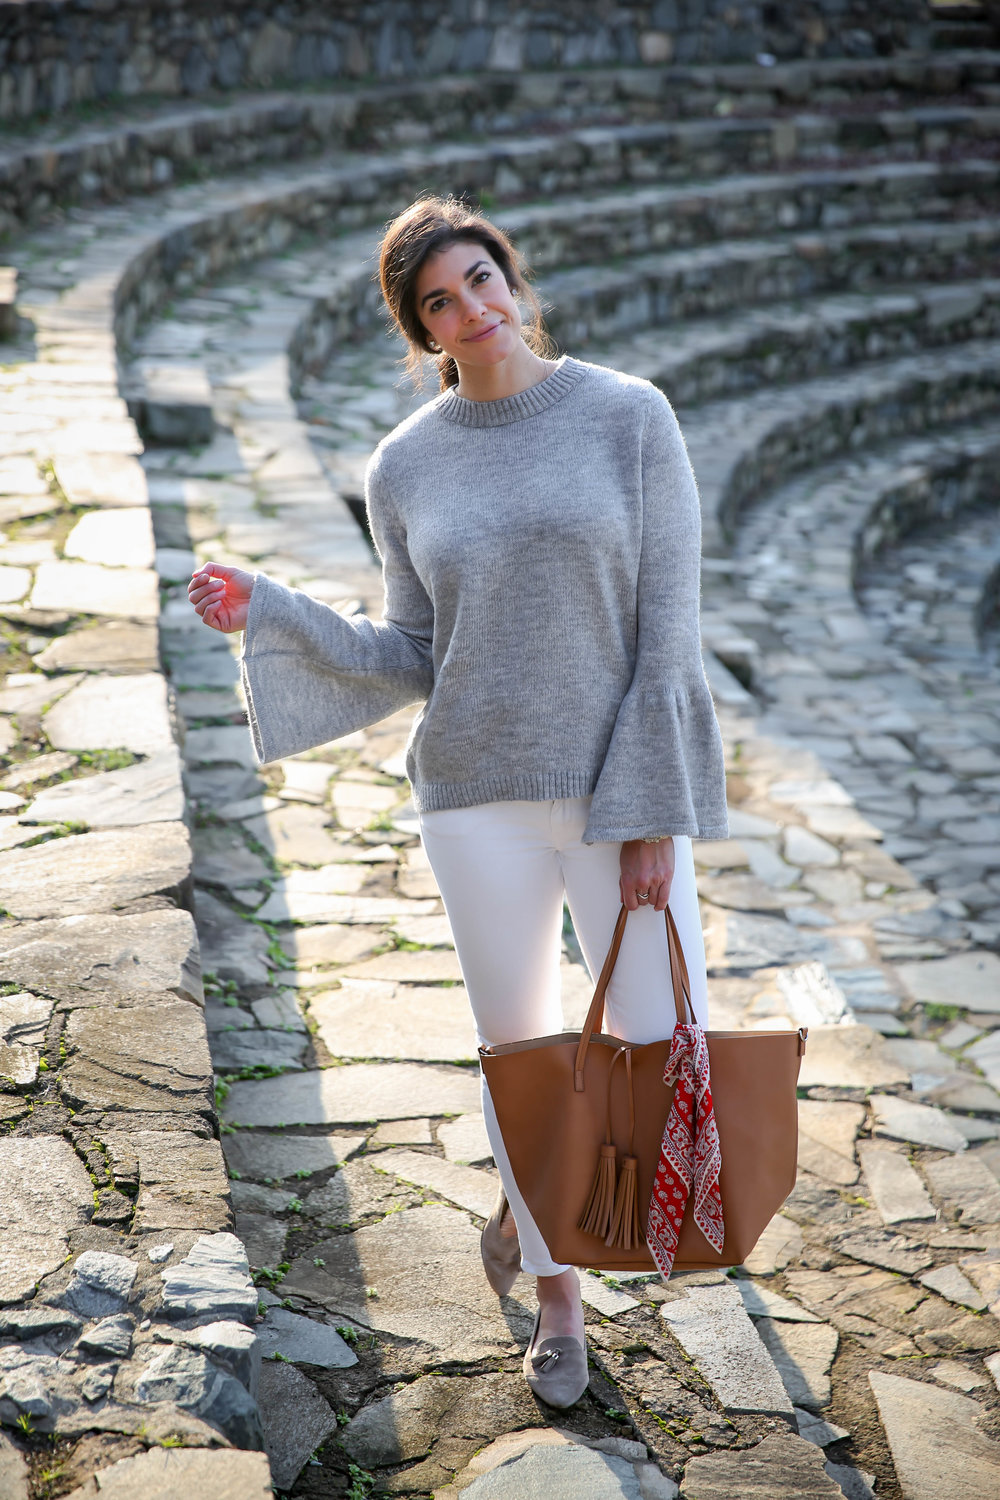 Lauren-Schwaiger-OOTD-Chic-White-Denim-Grey-Sweater.jpg